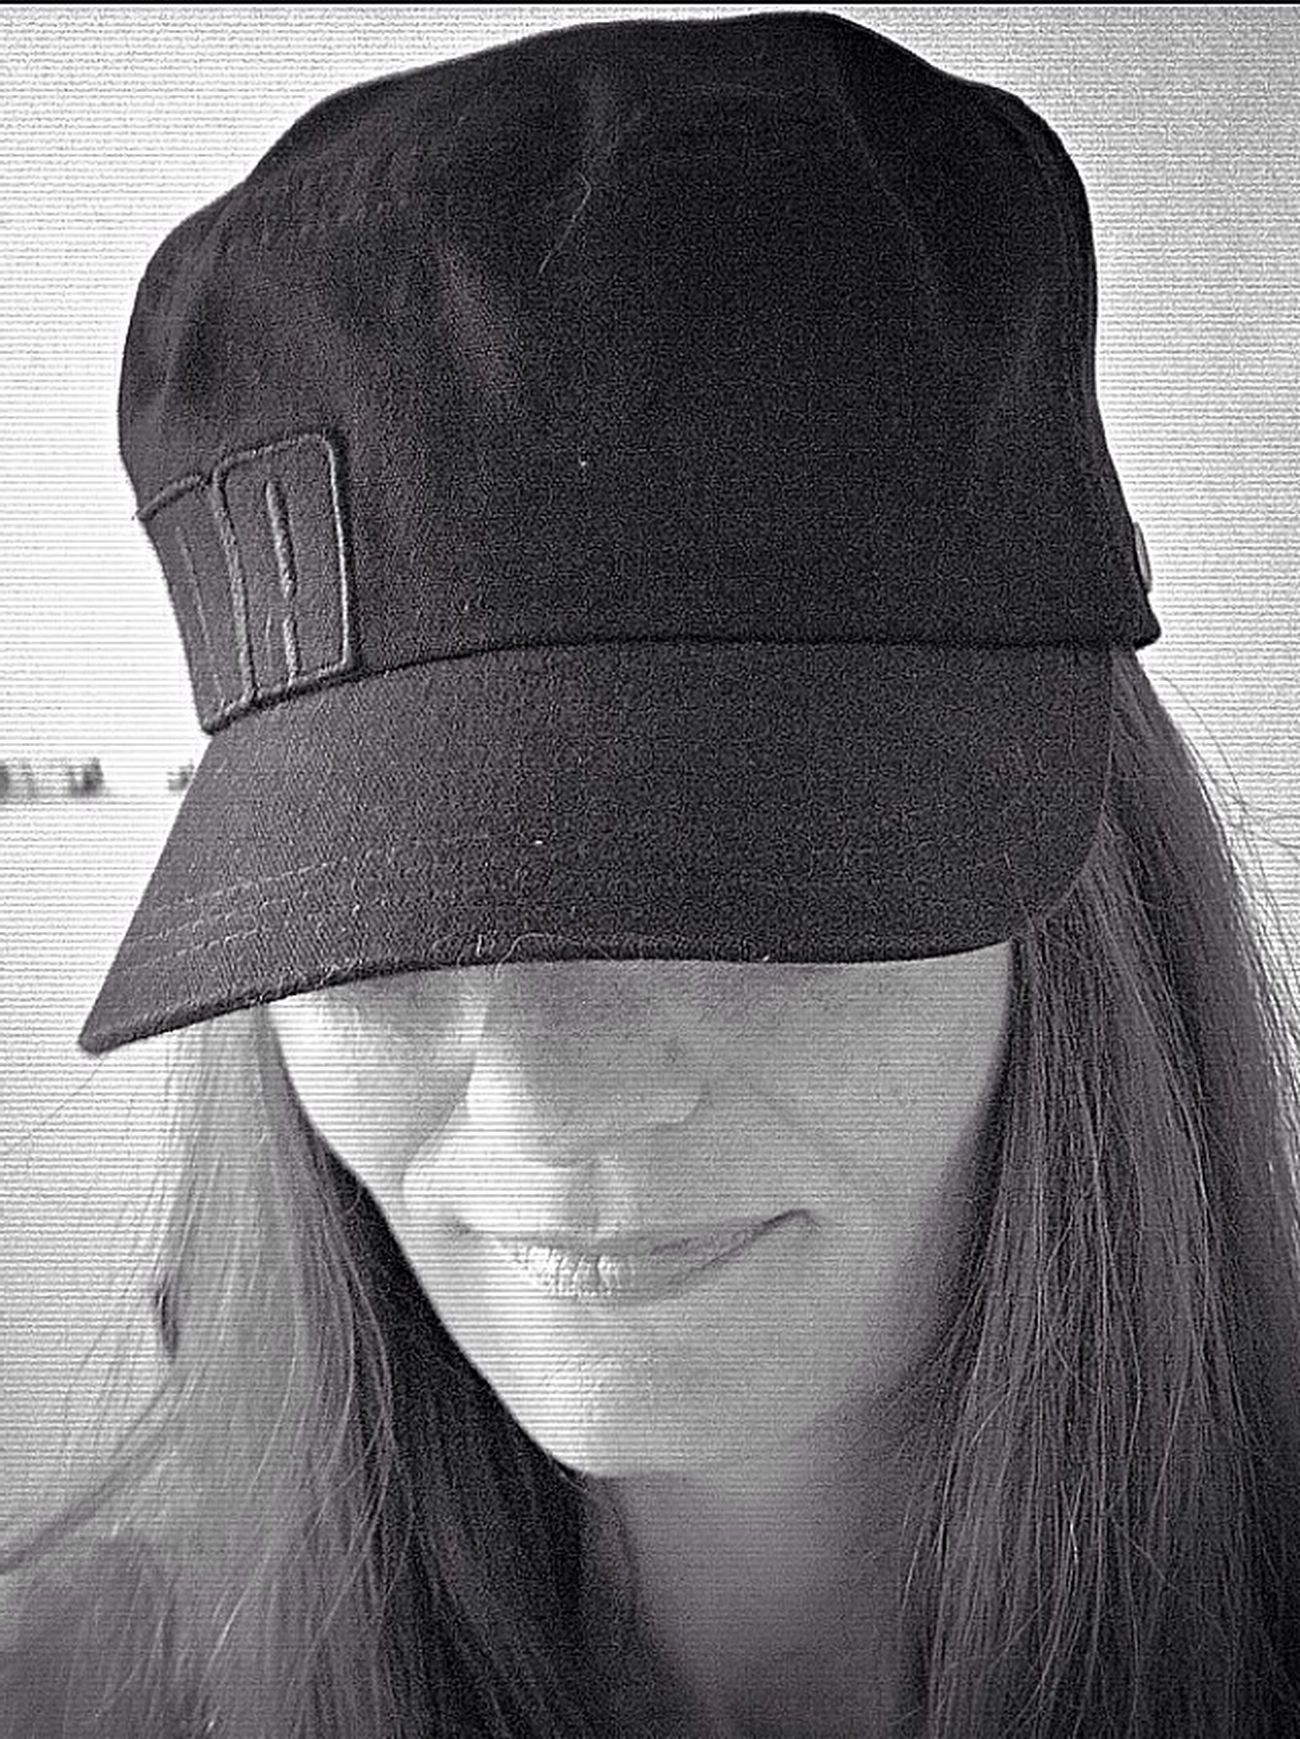 Camillaoceans Selfi I hide sometimes .. I need the silence and nothing more I hide in My cap and I smile .. Its My freedom hiding in public? Tadaa Community Black & White Camillaoceans Photos